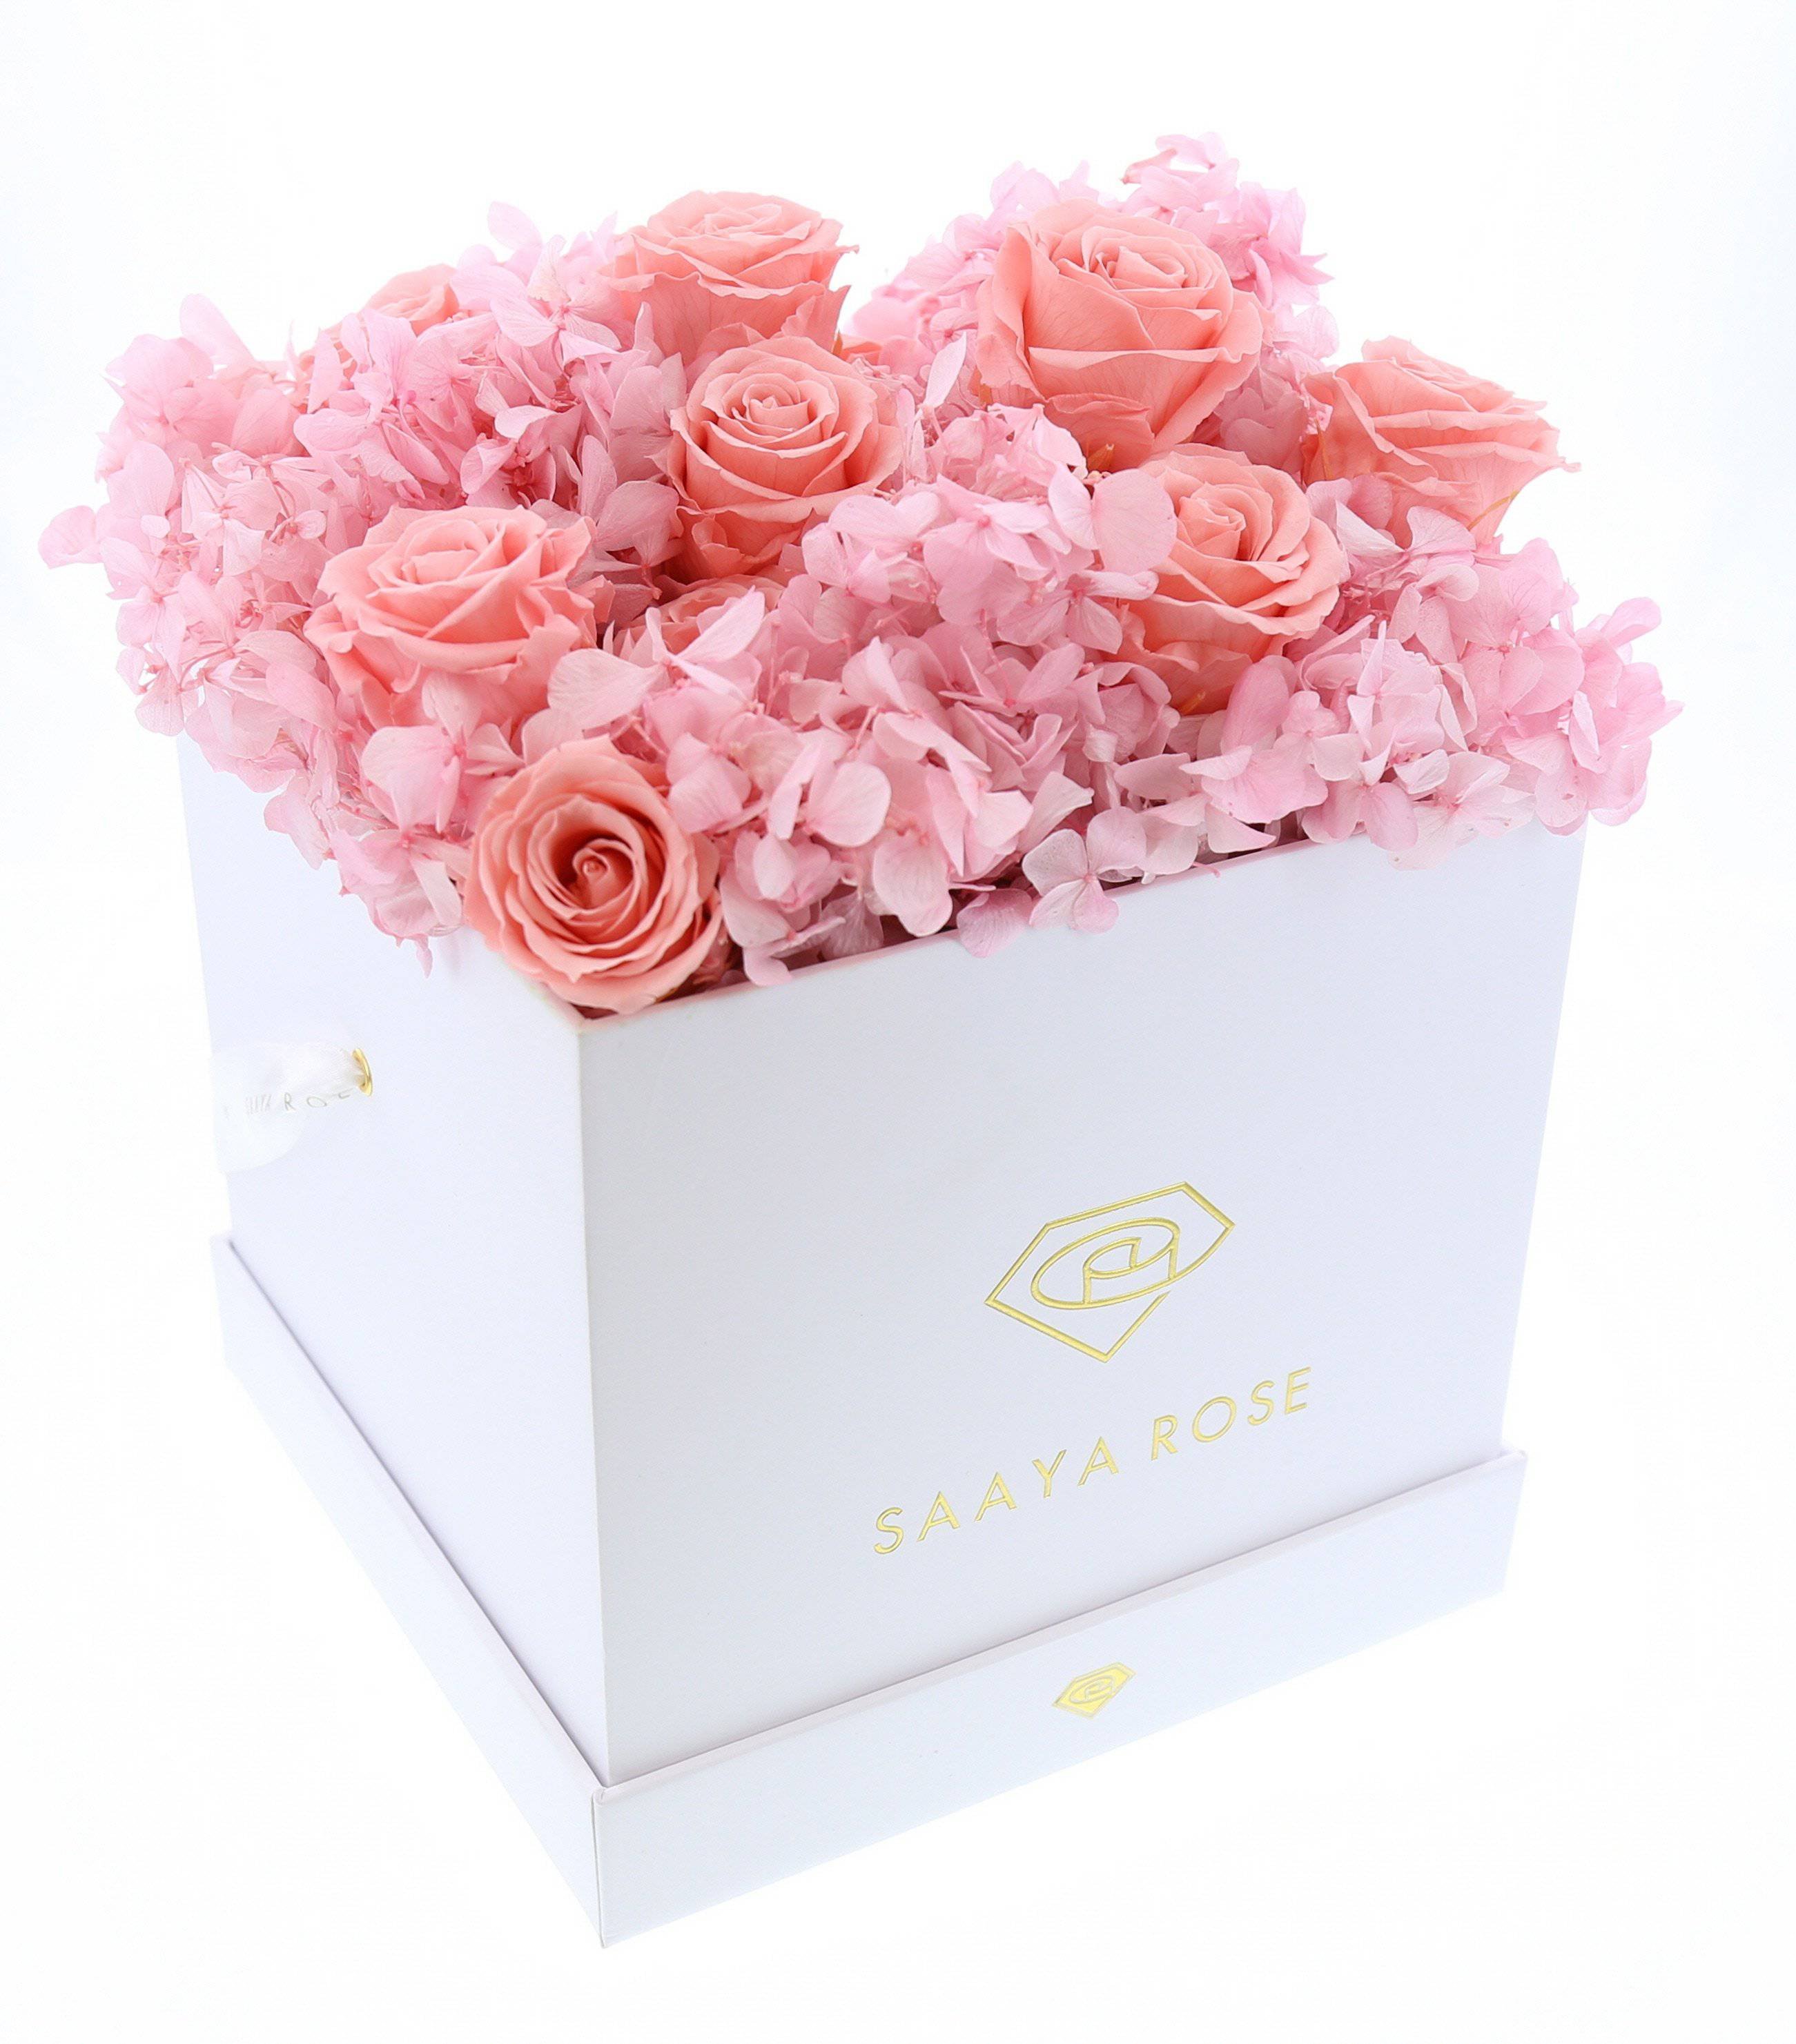 Hydrangea Rose Box (large)